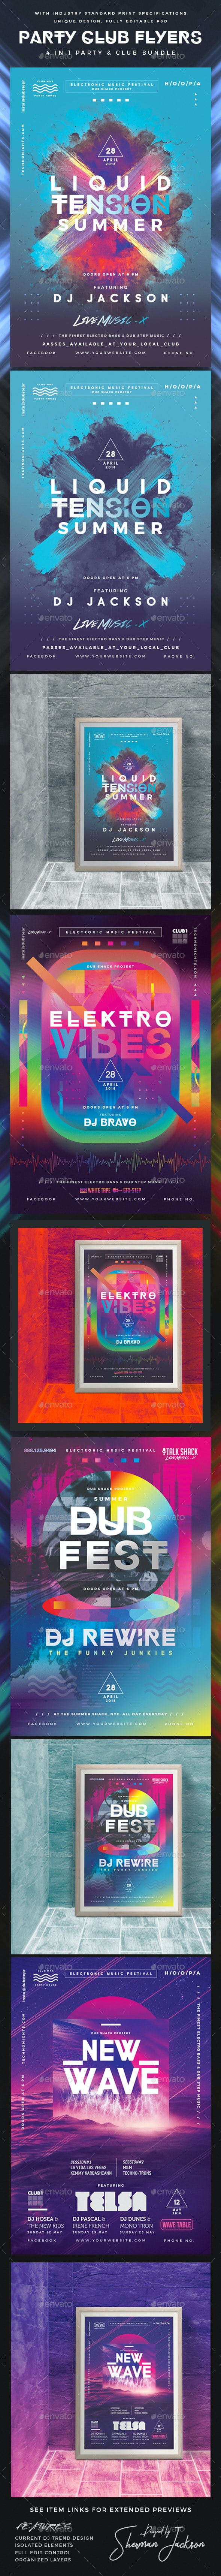 Modern Party & Club Flyer Poster Bundle Pack - Clubs & Parties Events